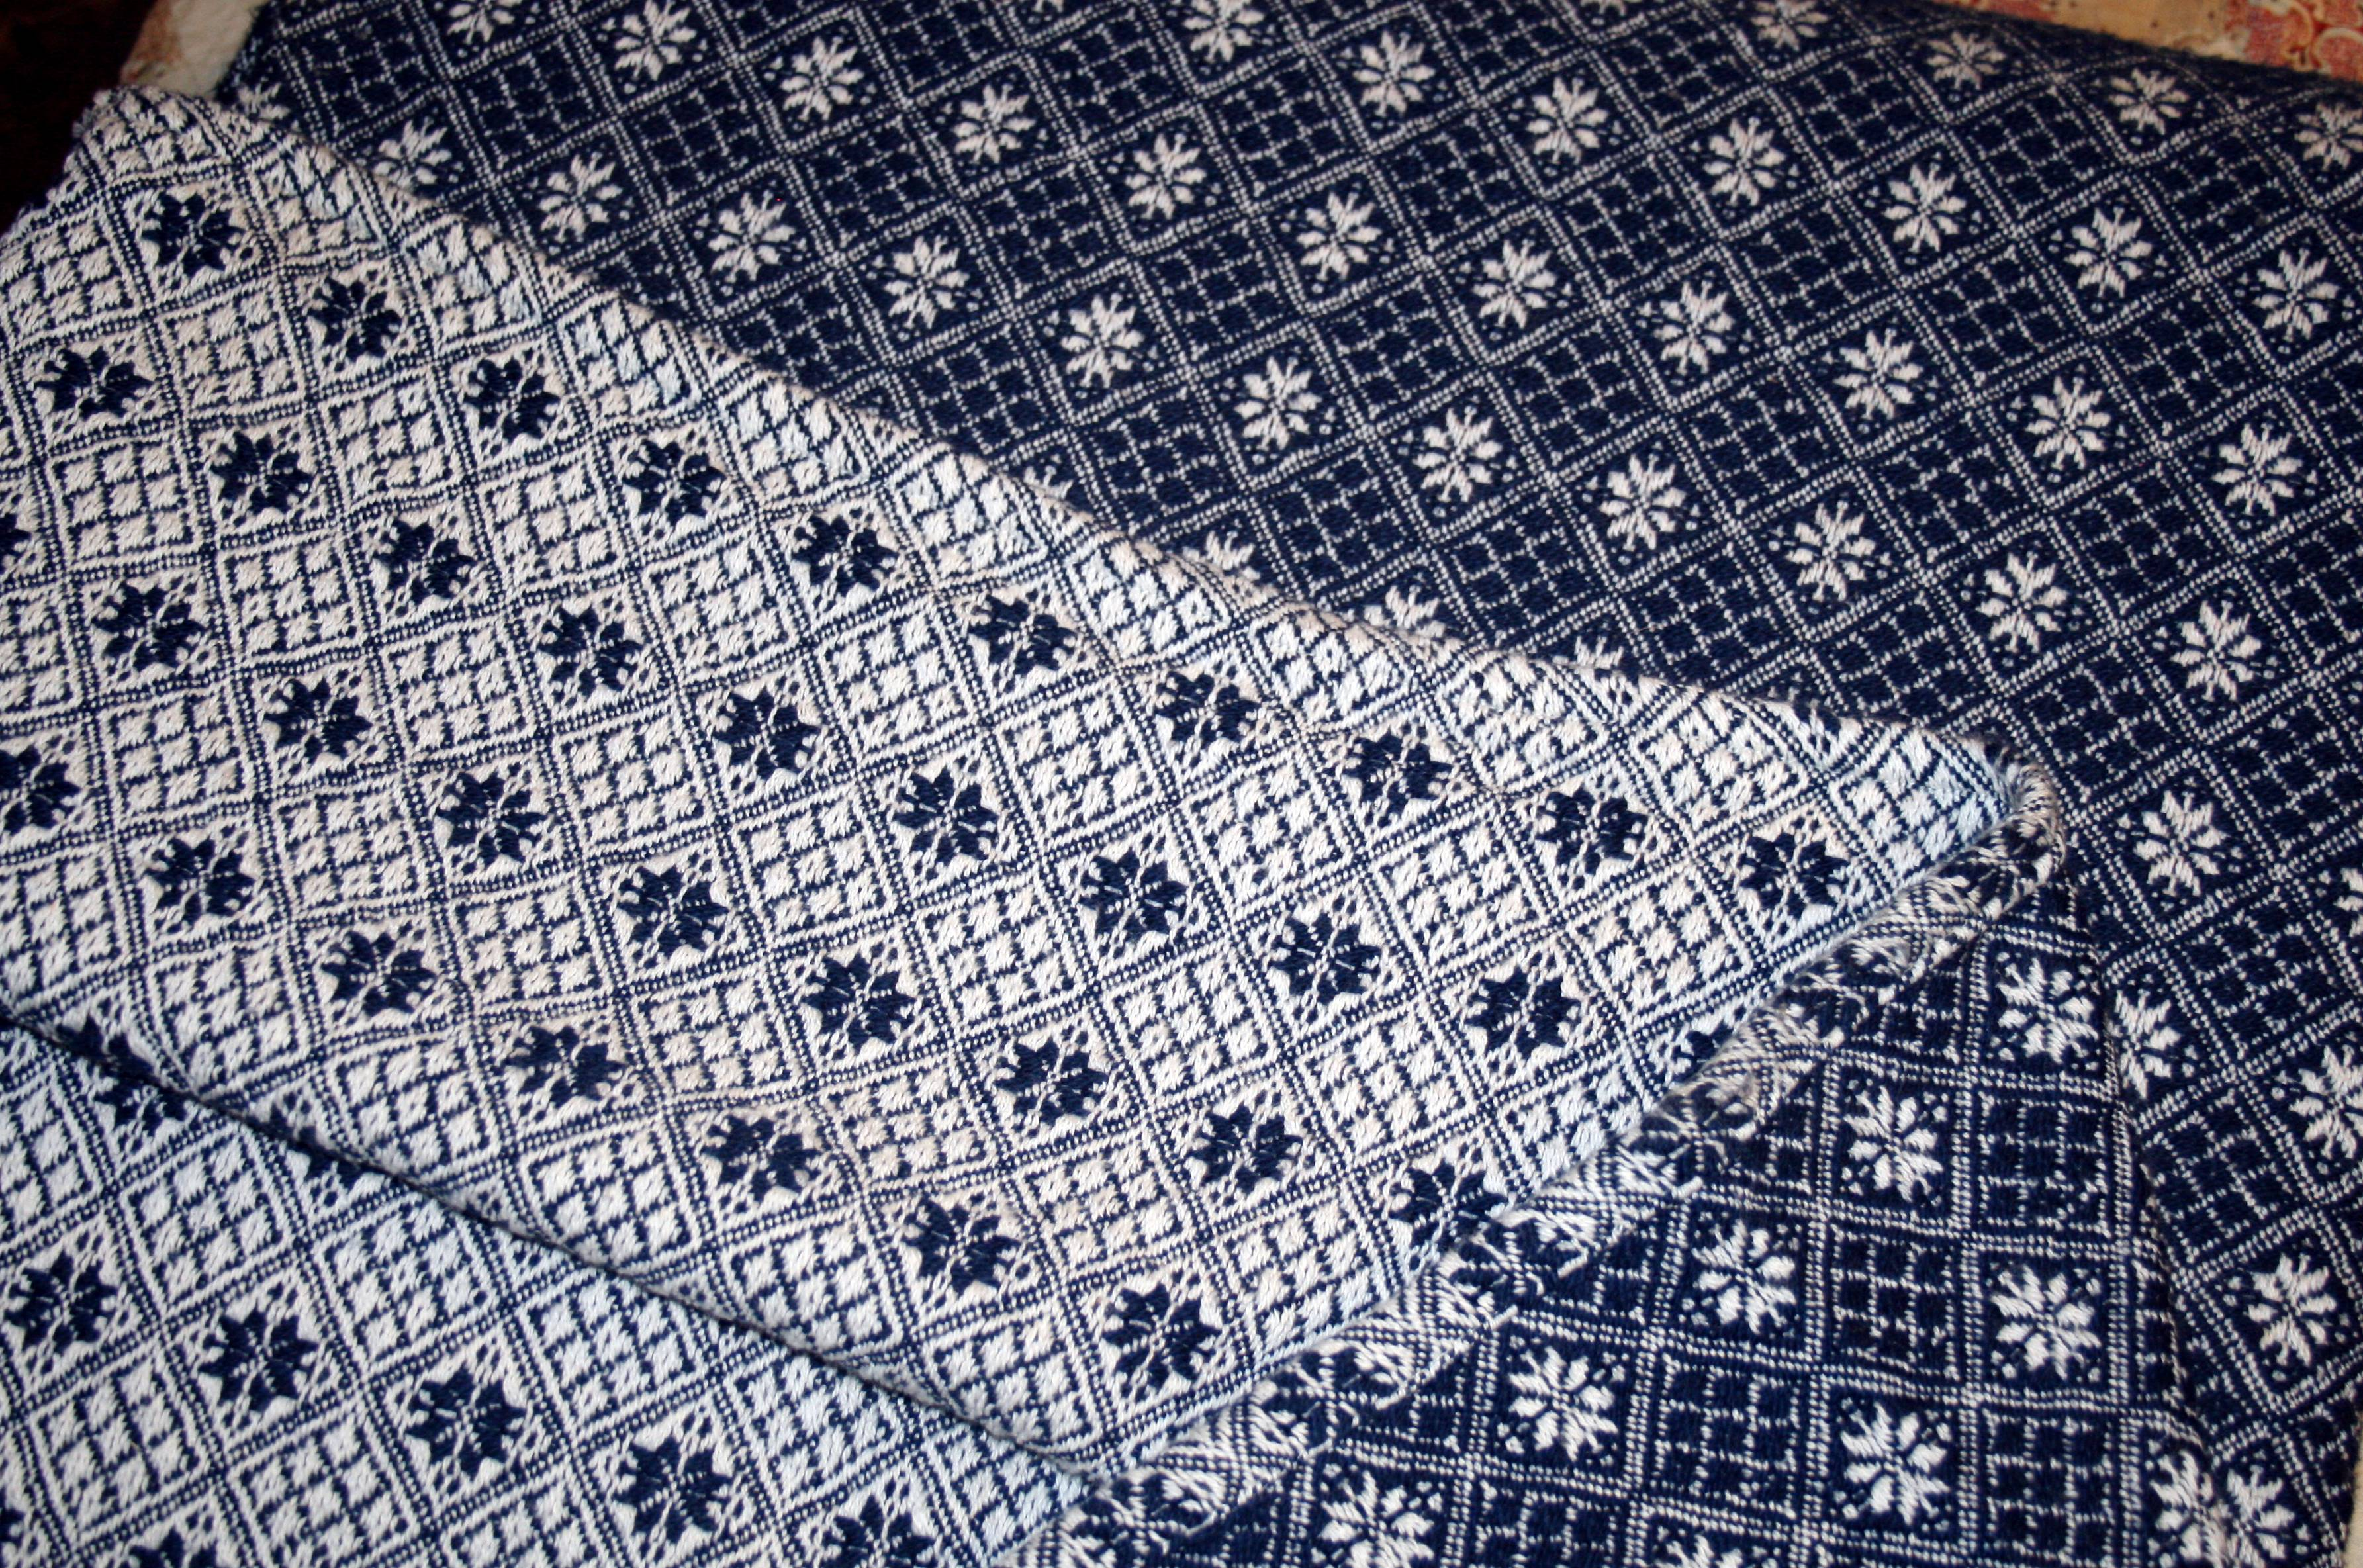 a woven coverlet in navy and white